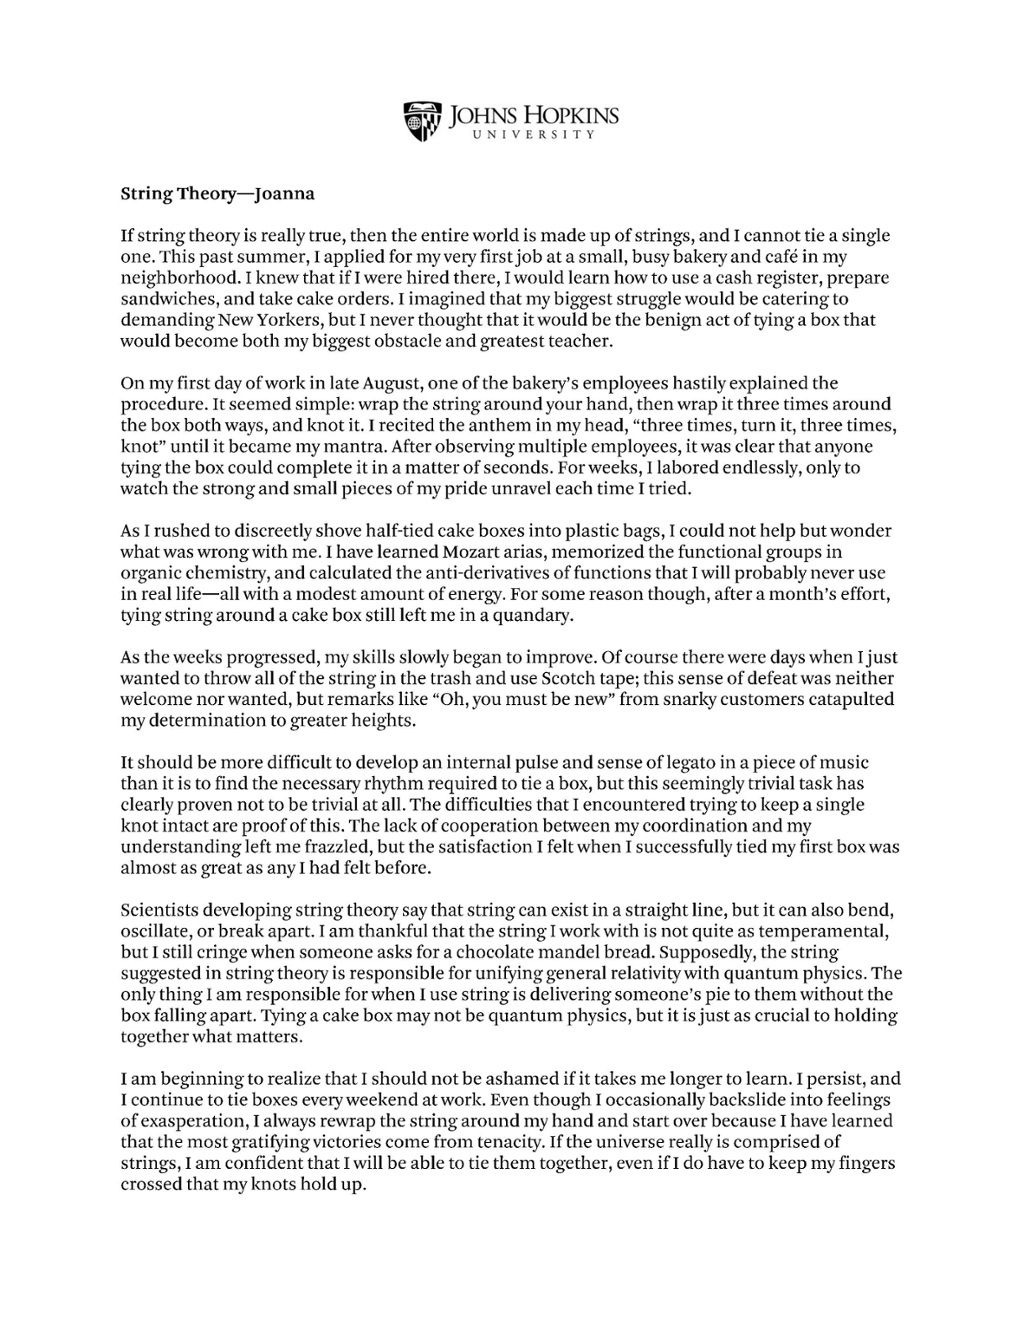 001 Essay Example How Long Should College Fearsome A Be Many Words Application For Apply Texas Full